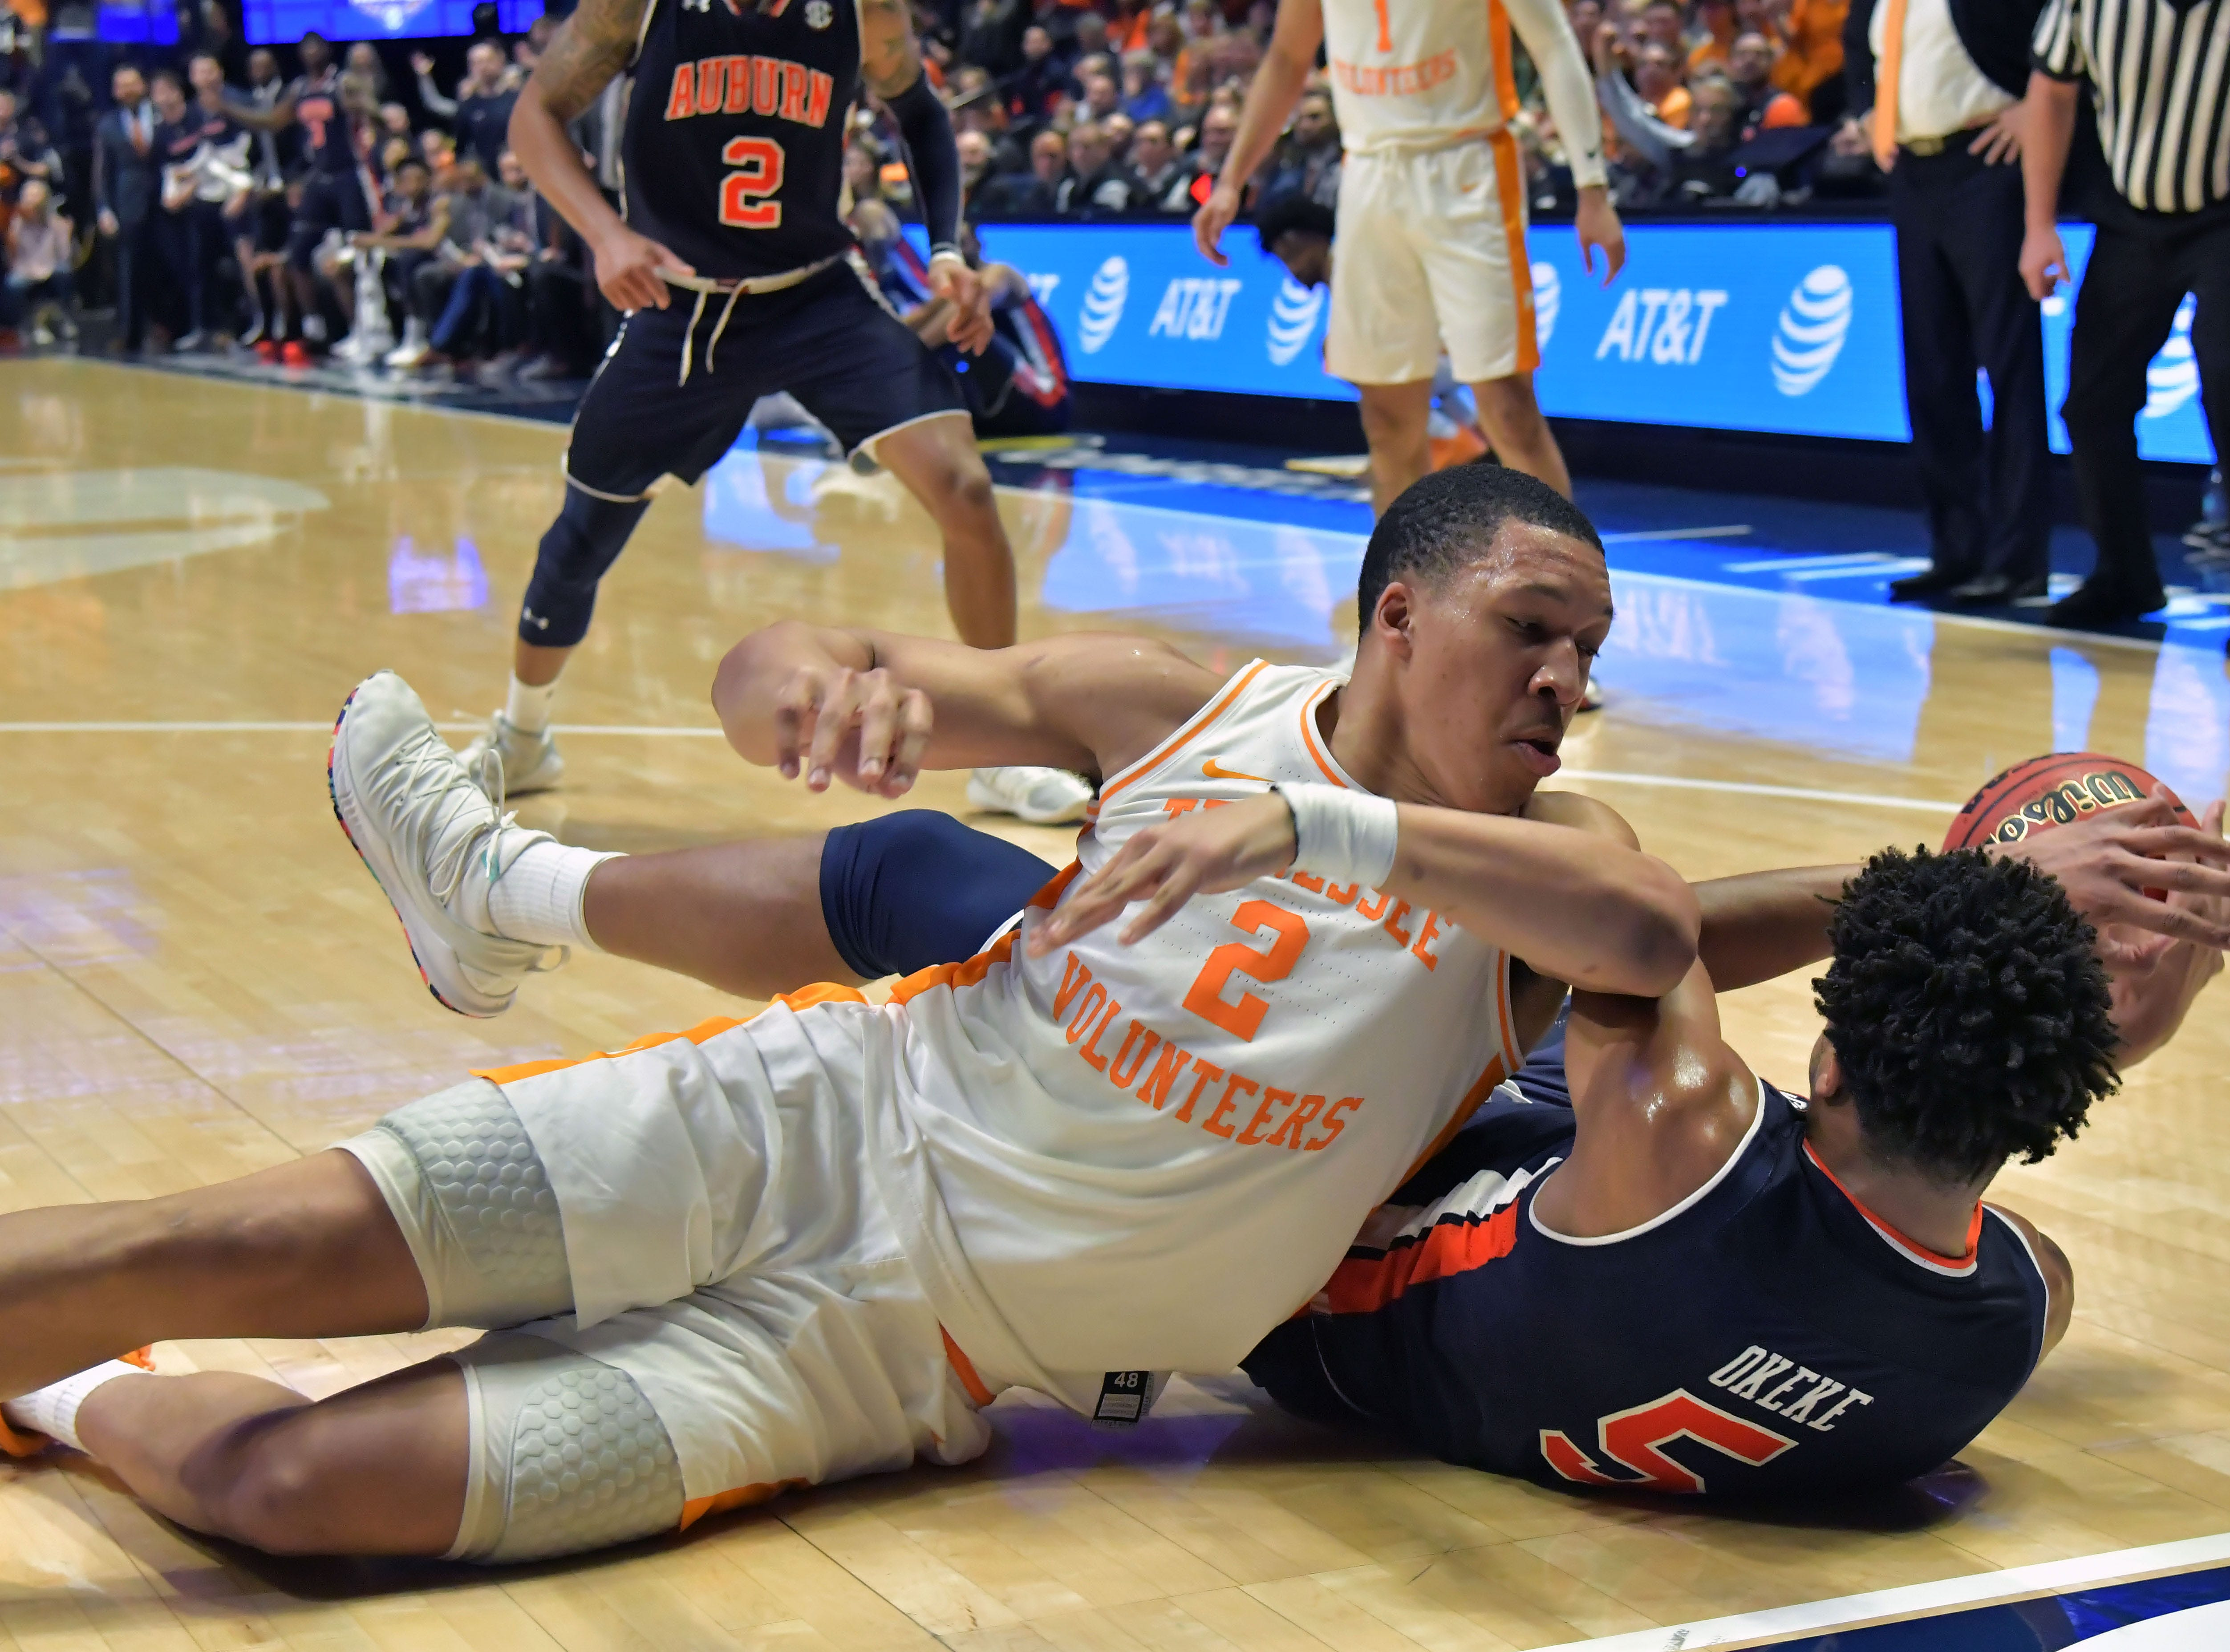 Mar 17, 2019; Nashville, TN, USA; Tennessee Volunteers forward Grant Williams (2) fights for the loose ball against Auburn Tigers forward Chuma Okeke (5) during the second half of the championship game in the SEC conference tournament at Bridgestone Arena. Auburn won 84-64. Mandatory Credit: Jim Brown-USA TODAY Sports